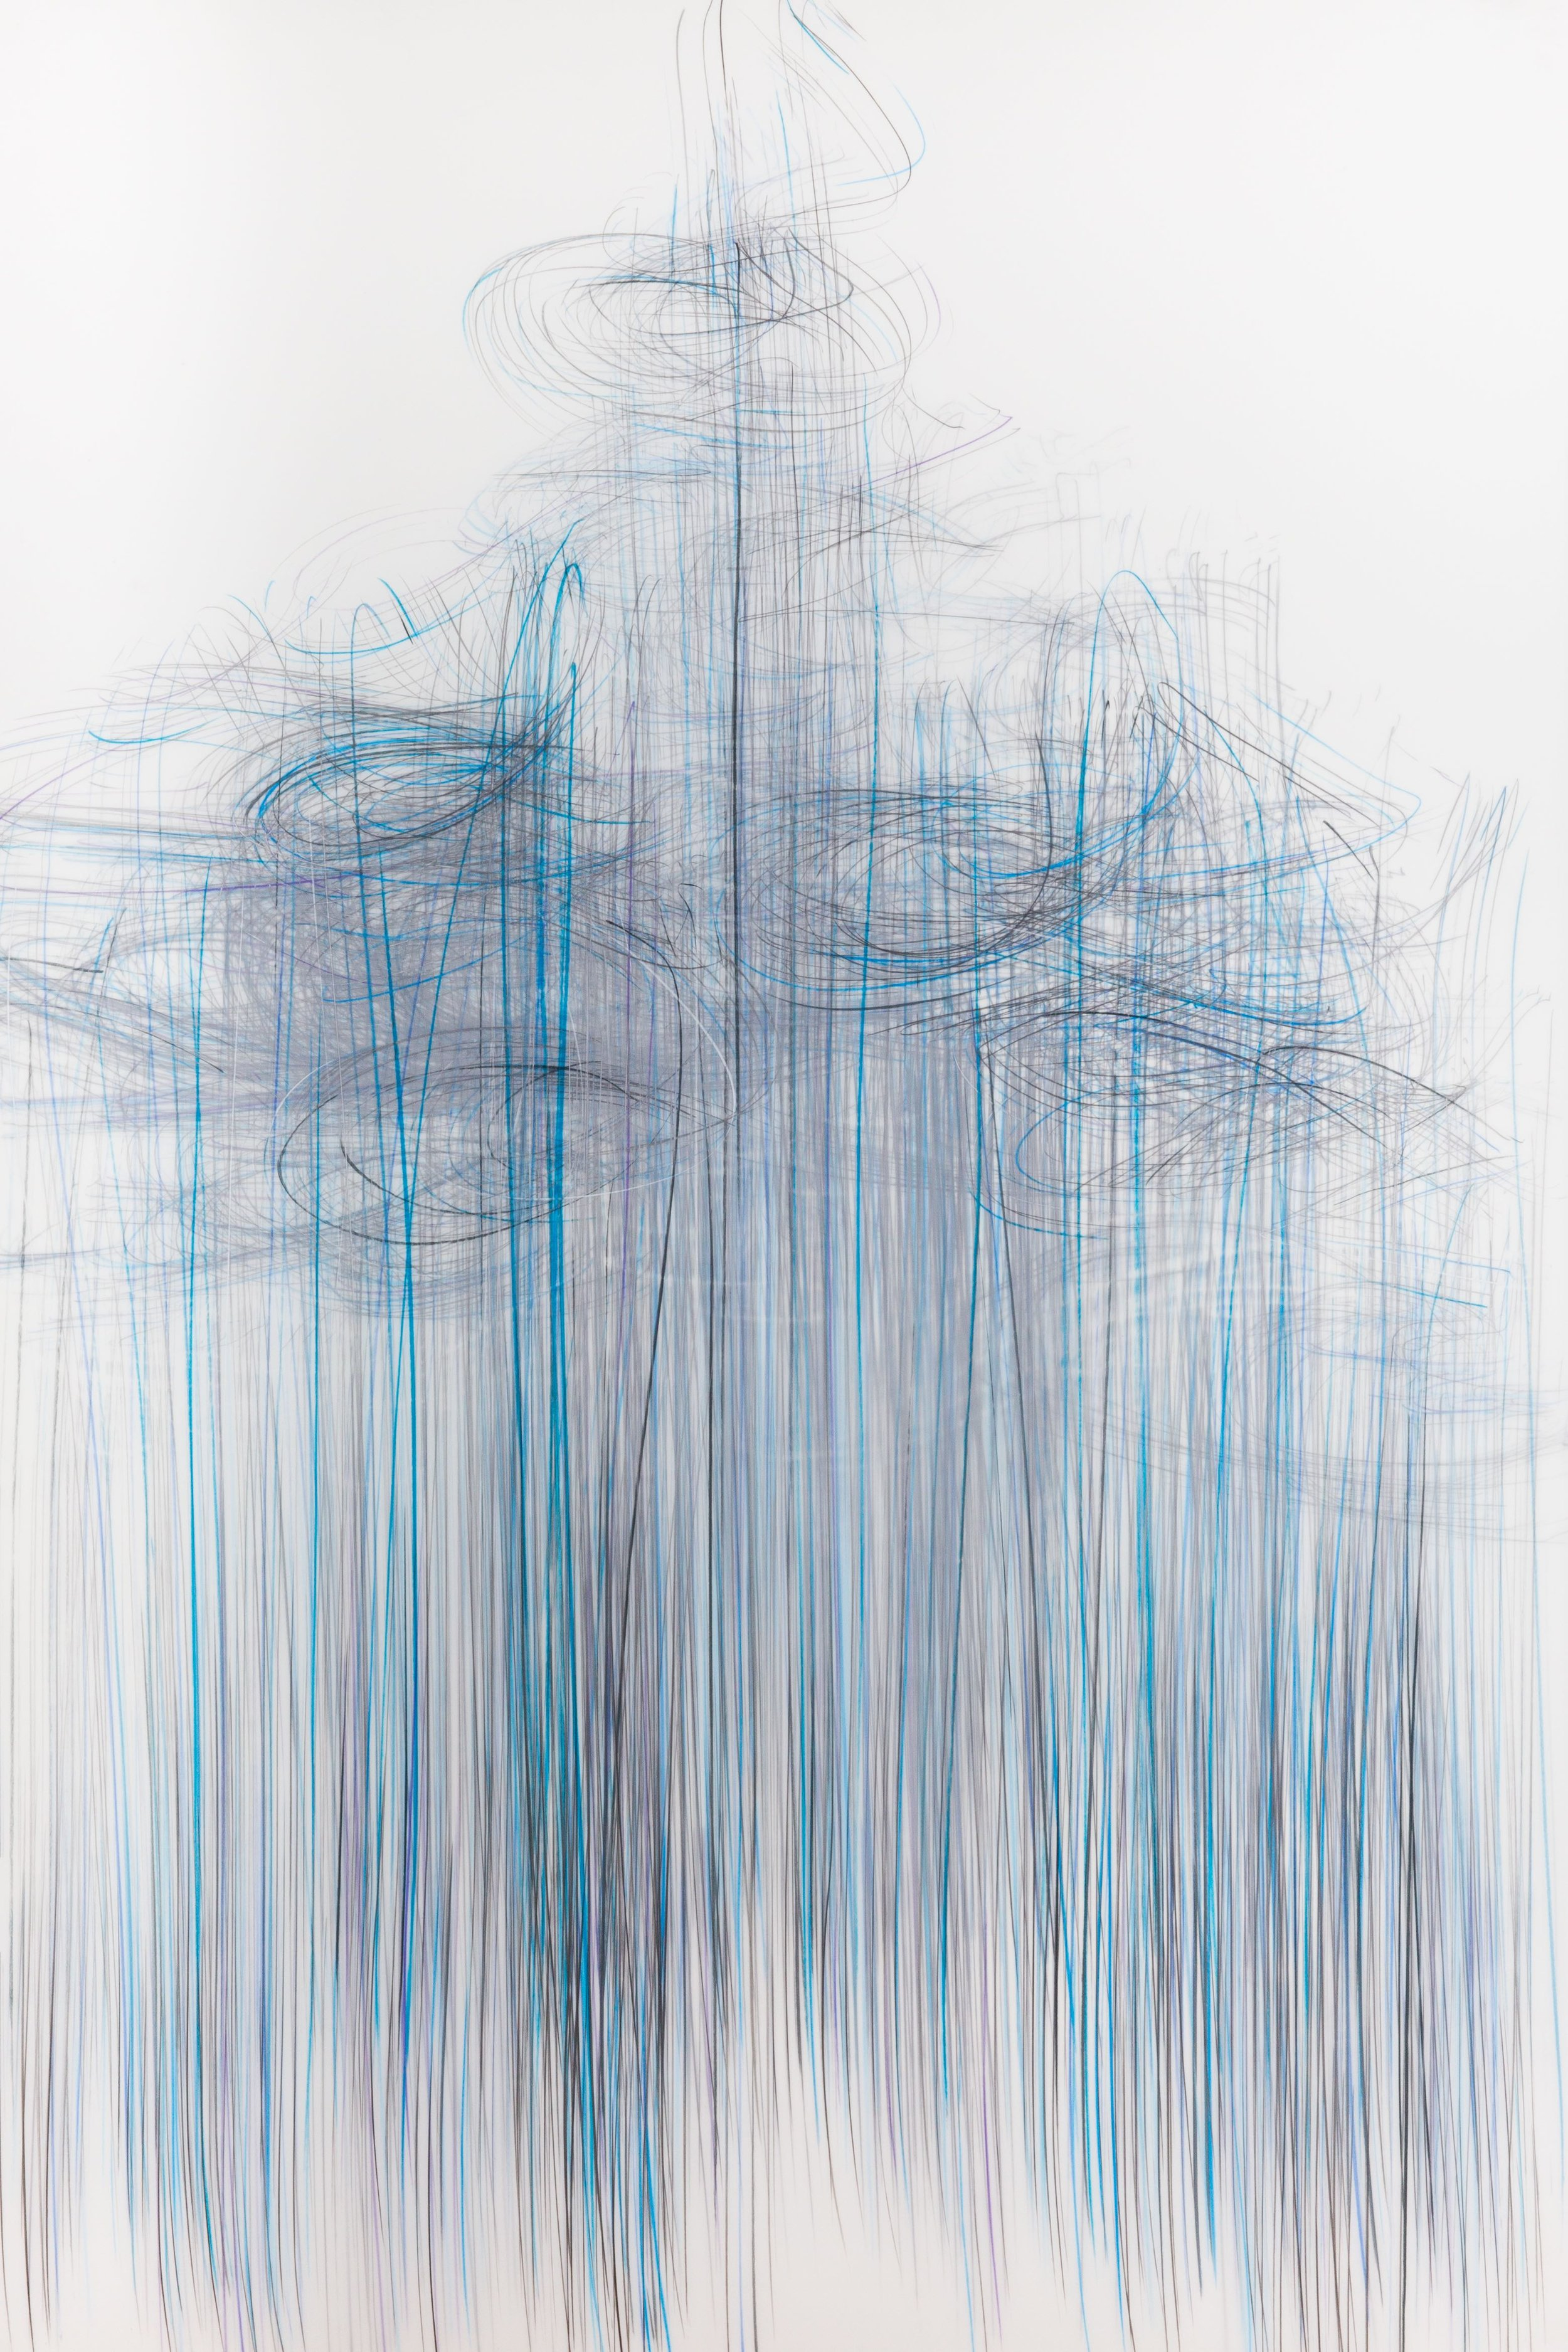 Jaanika Peerna  Thaw Series 1 , 2017 graphite and colored pencil on two layers of Mylar 54 x 36 in. SOLD